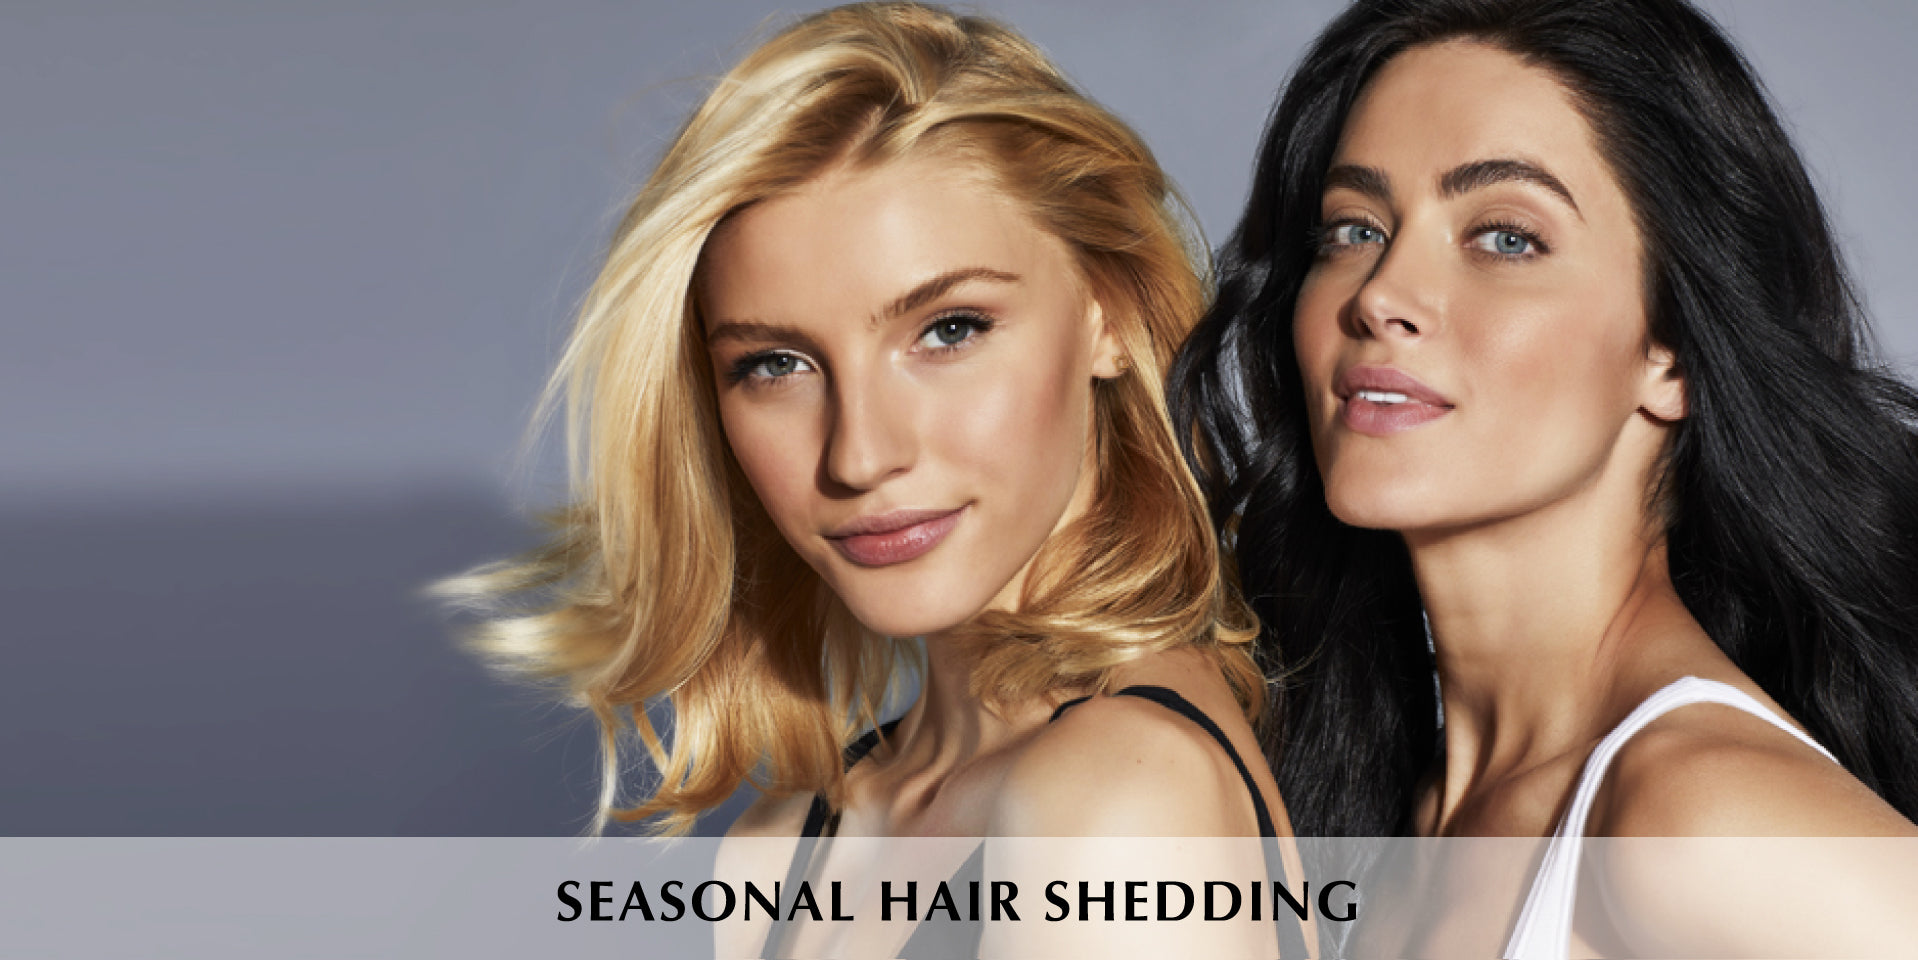 seasonal hair shedding